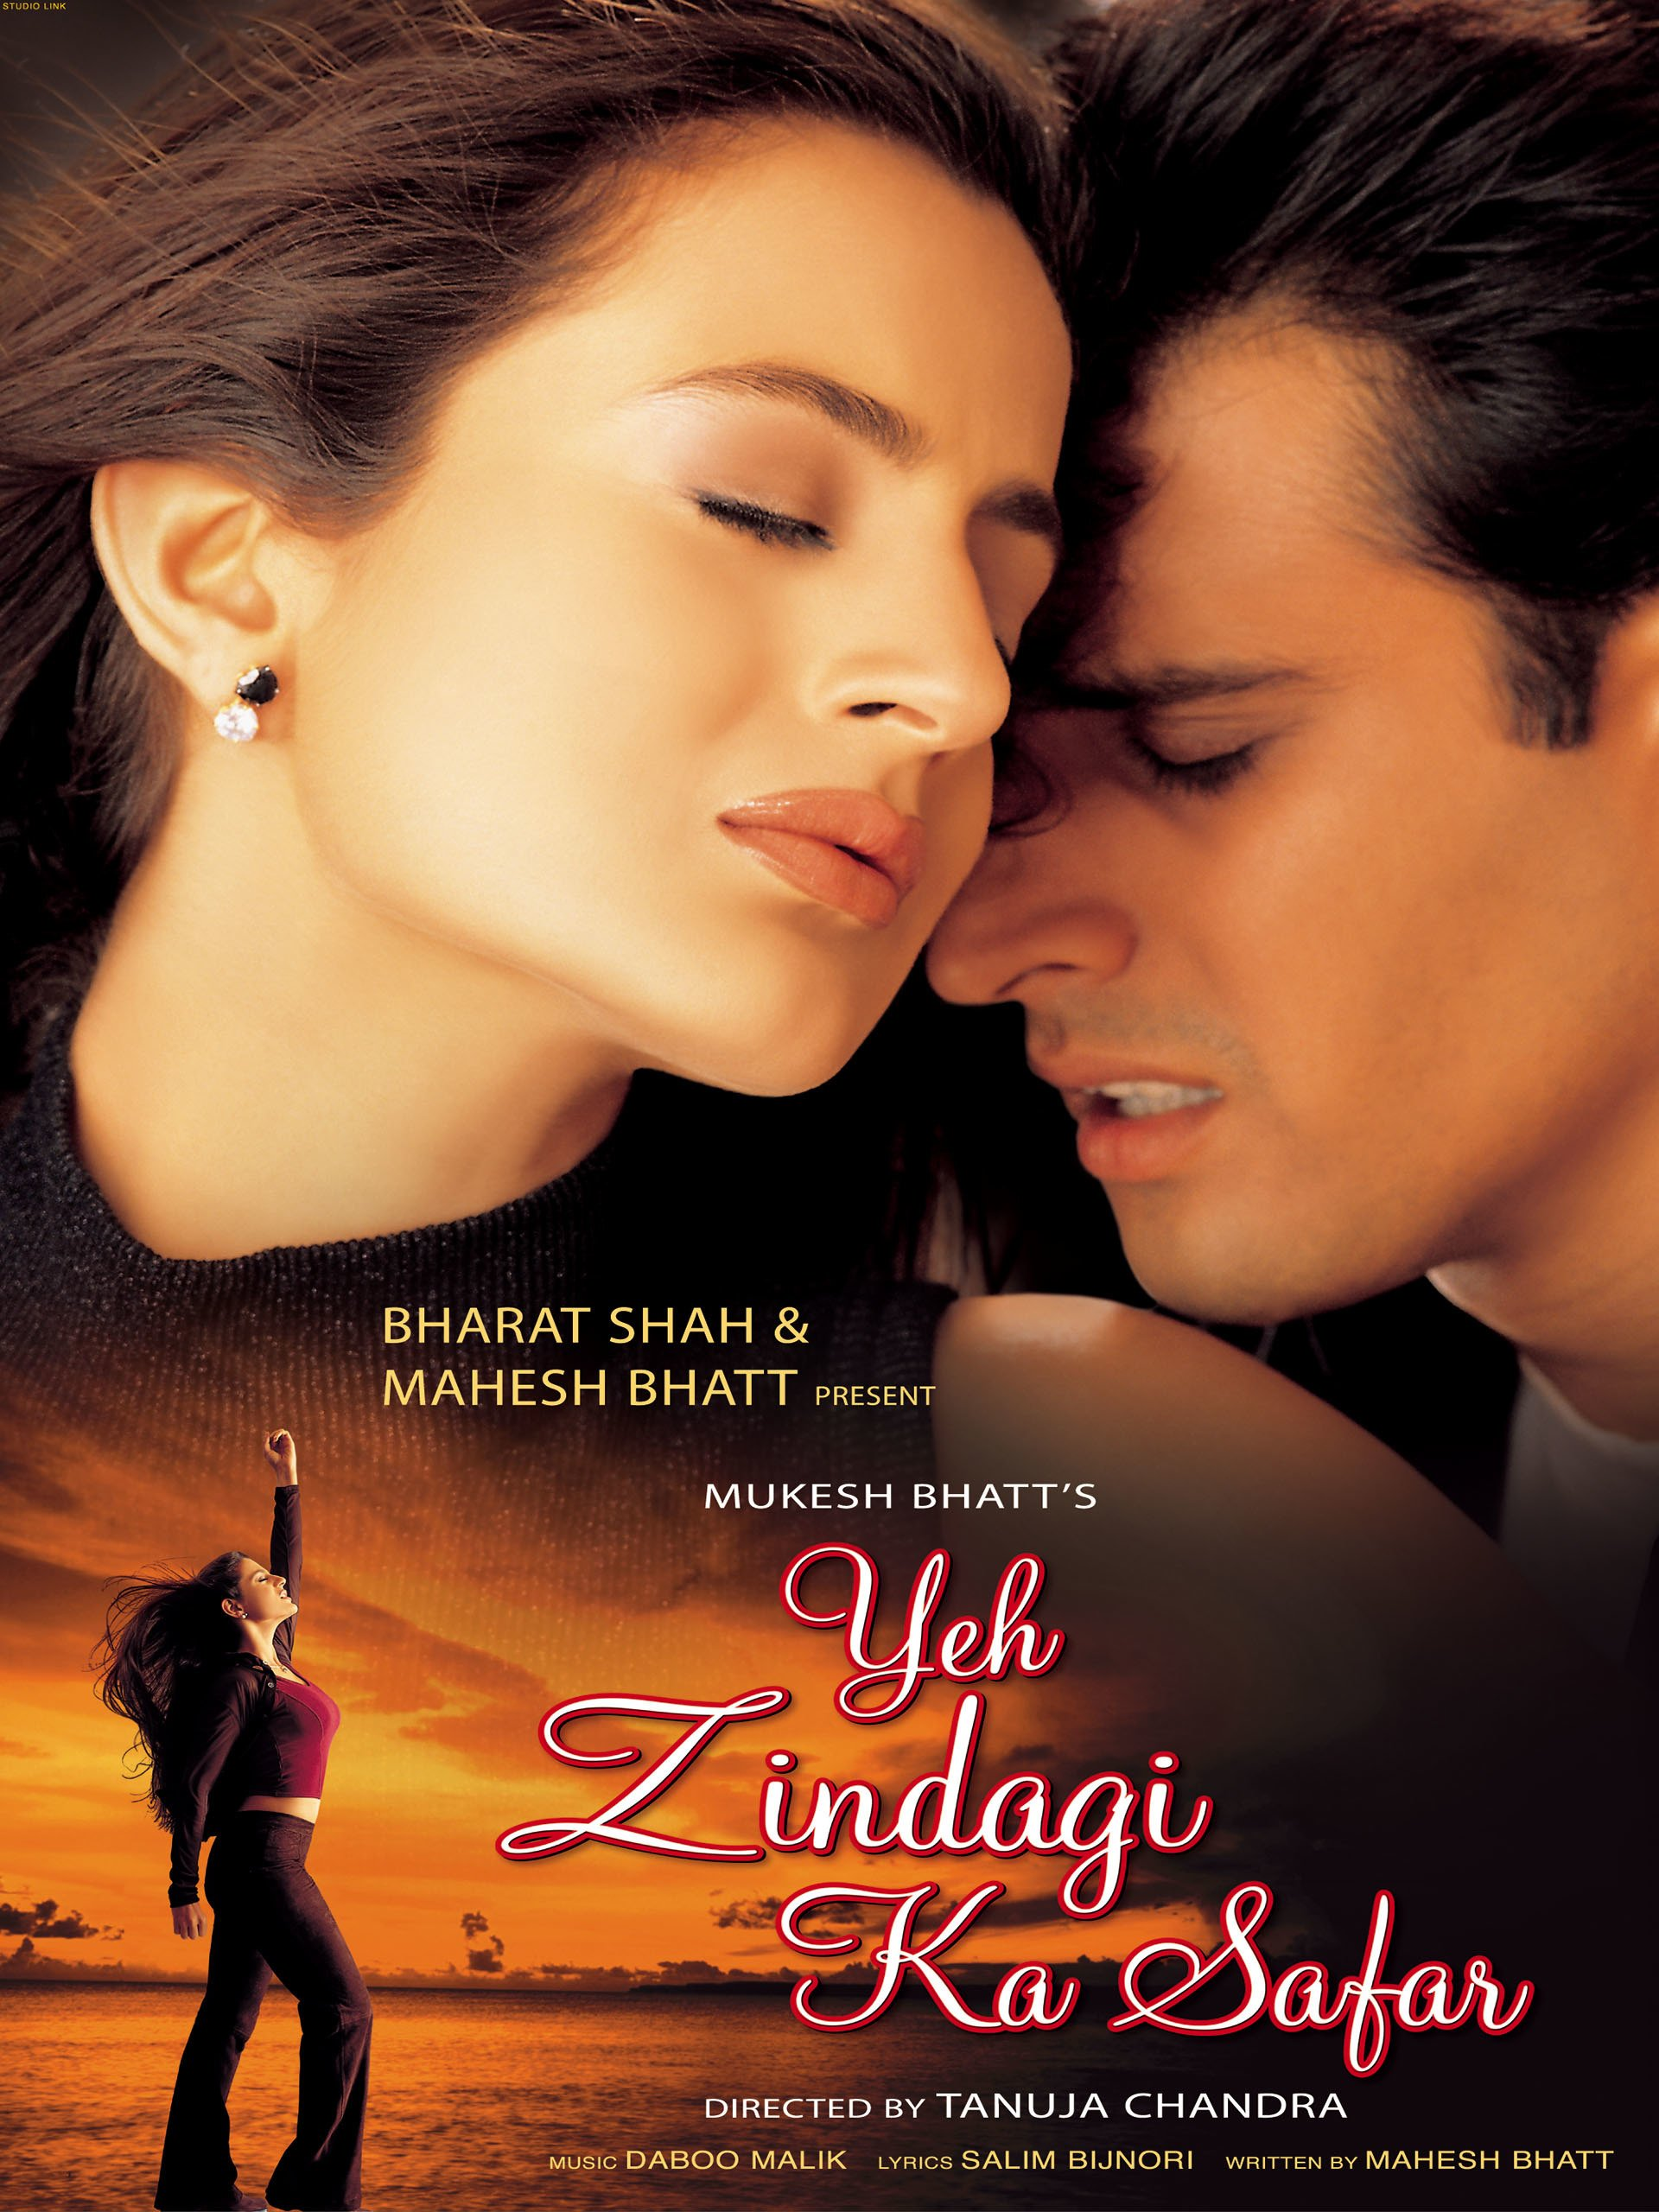 Yeh Zindagi Ka Safar Review 1 5 Yeh Zindagi Ka Safar Movie Review Yeh Zindagi Ka Safar 2001 Public Review Film Review